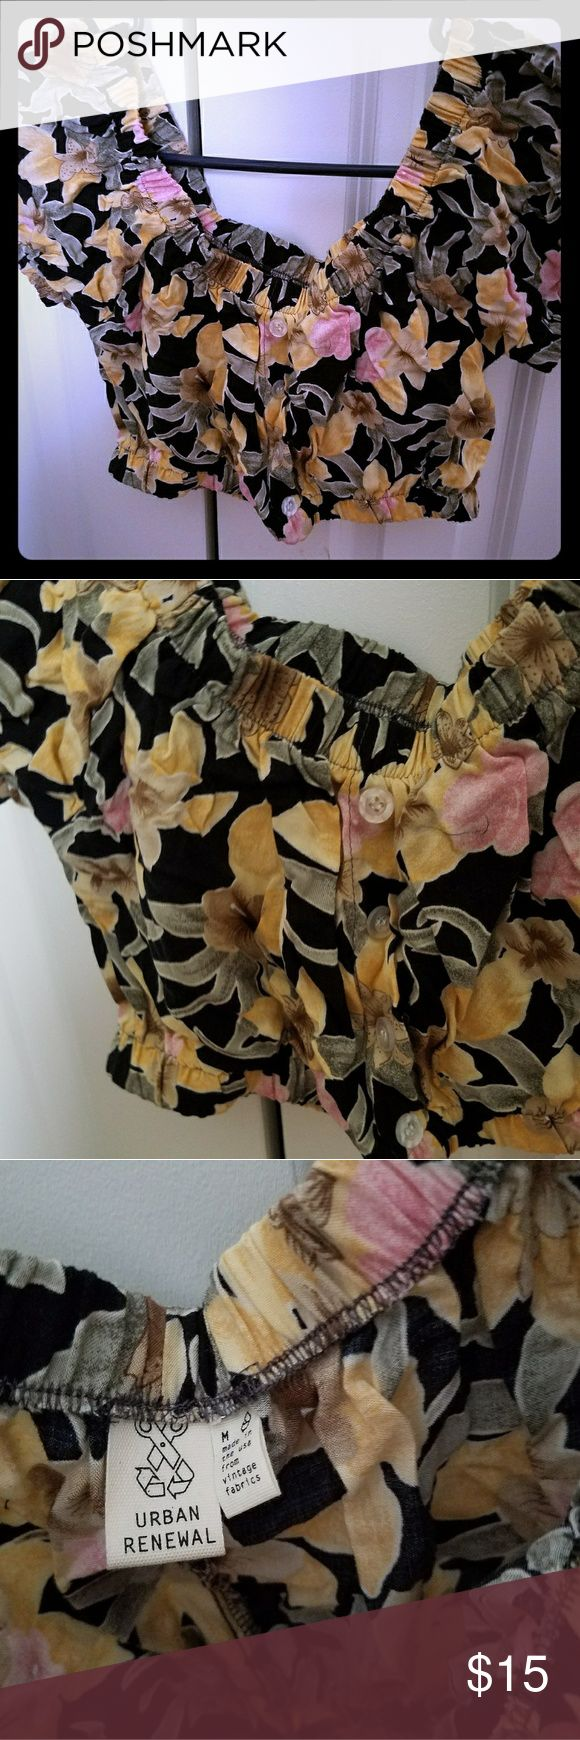 Urban Outfitters Floral crop top Very cute crop top perfect for summer. Never worn Urban Outfitters Tops Crop Tops